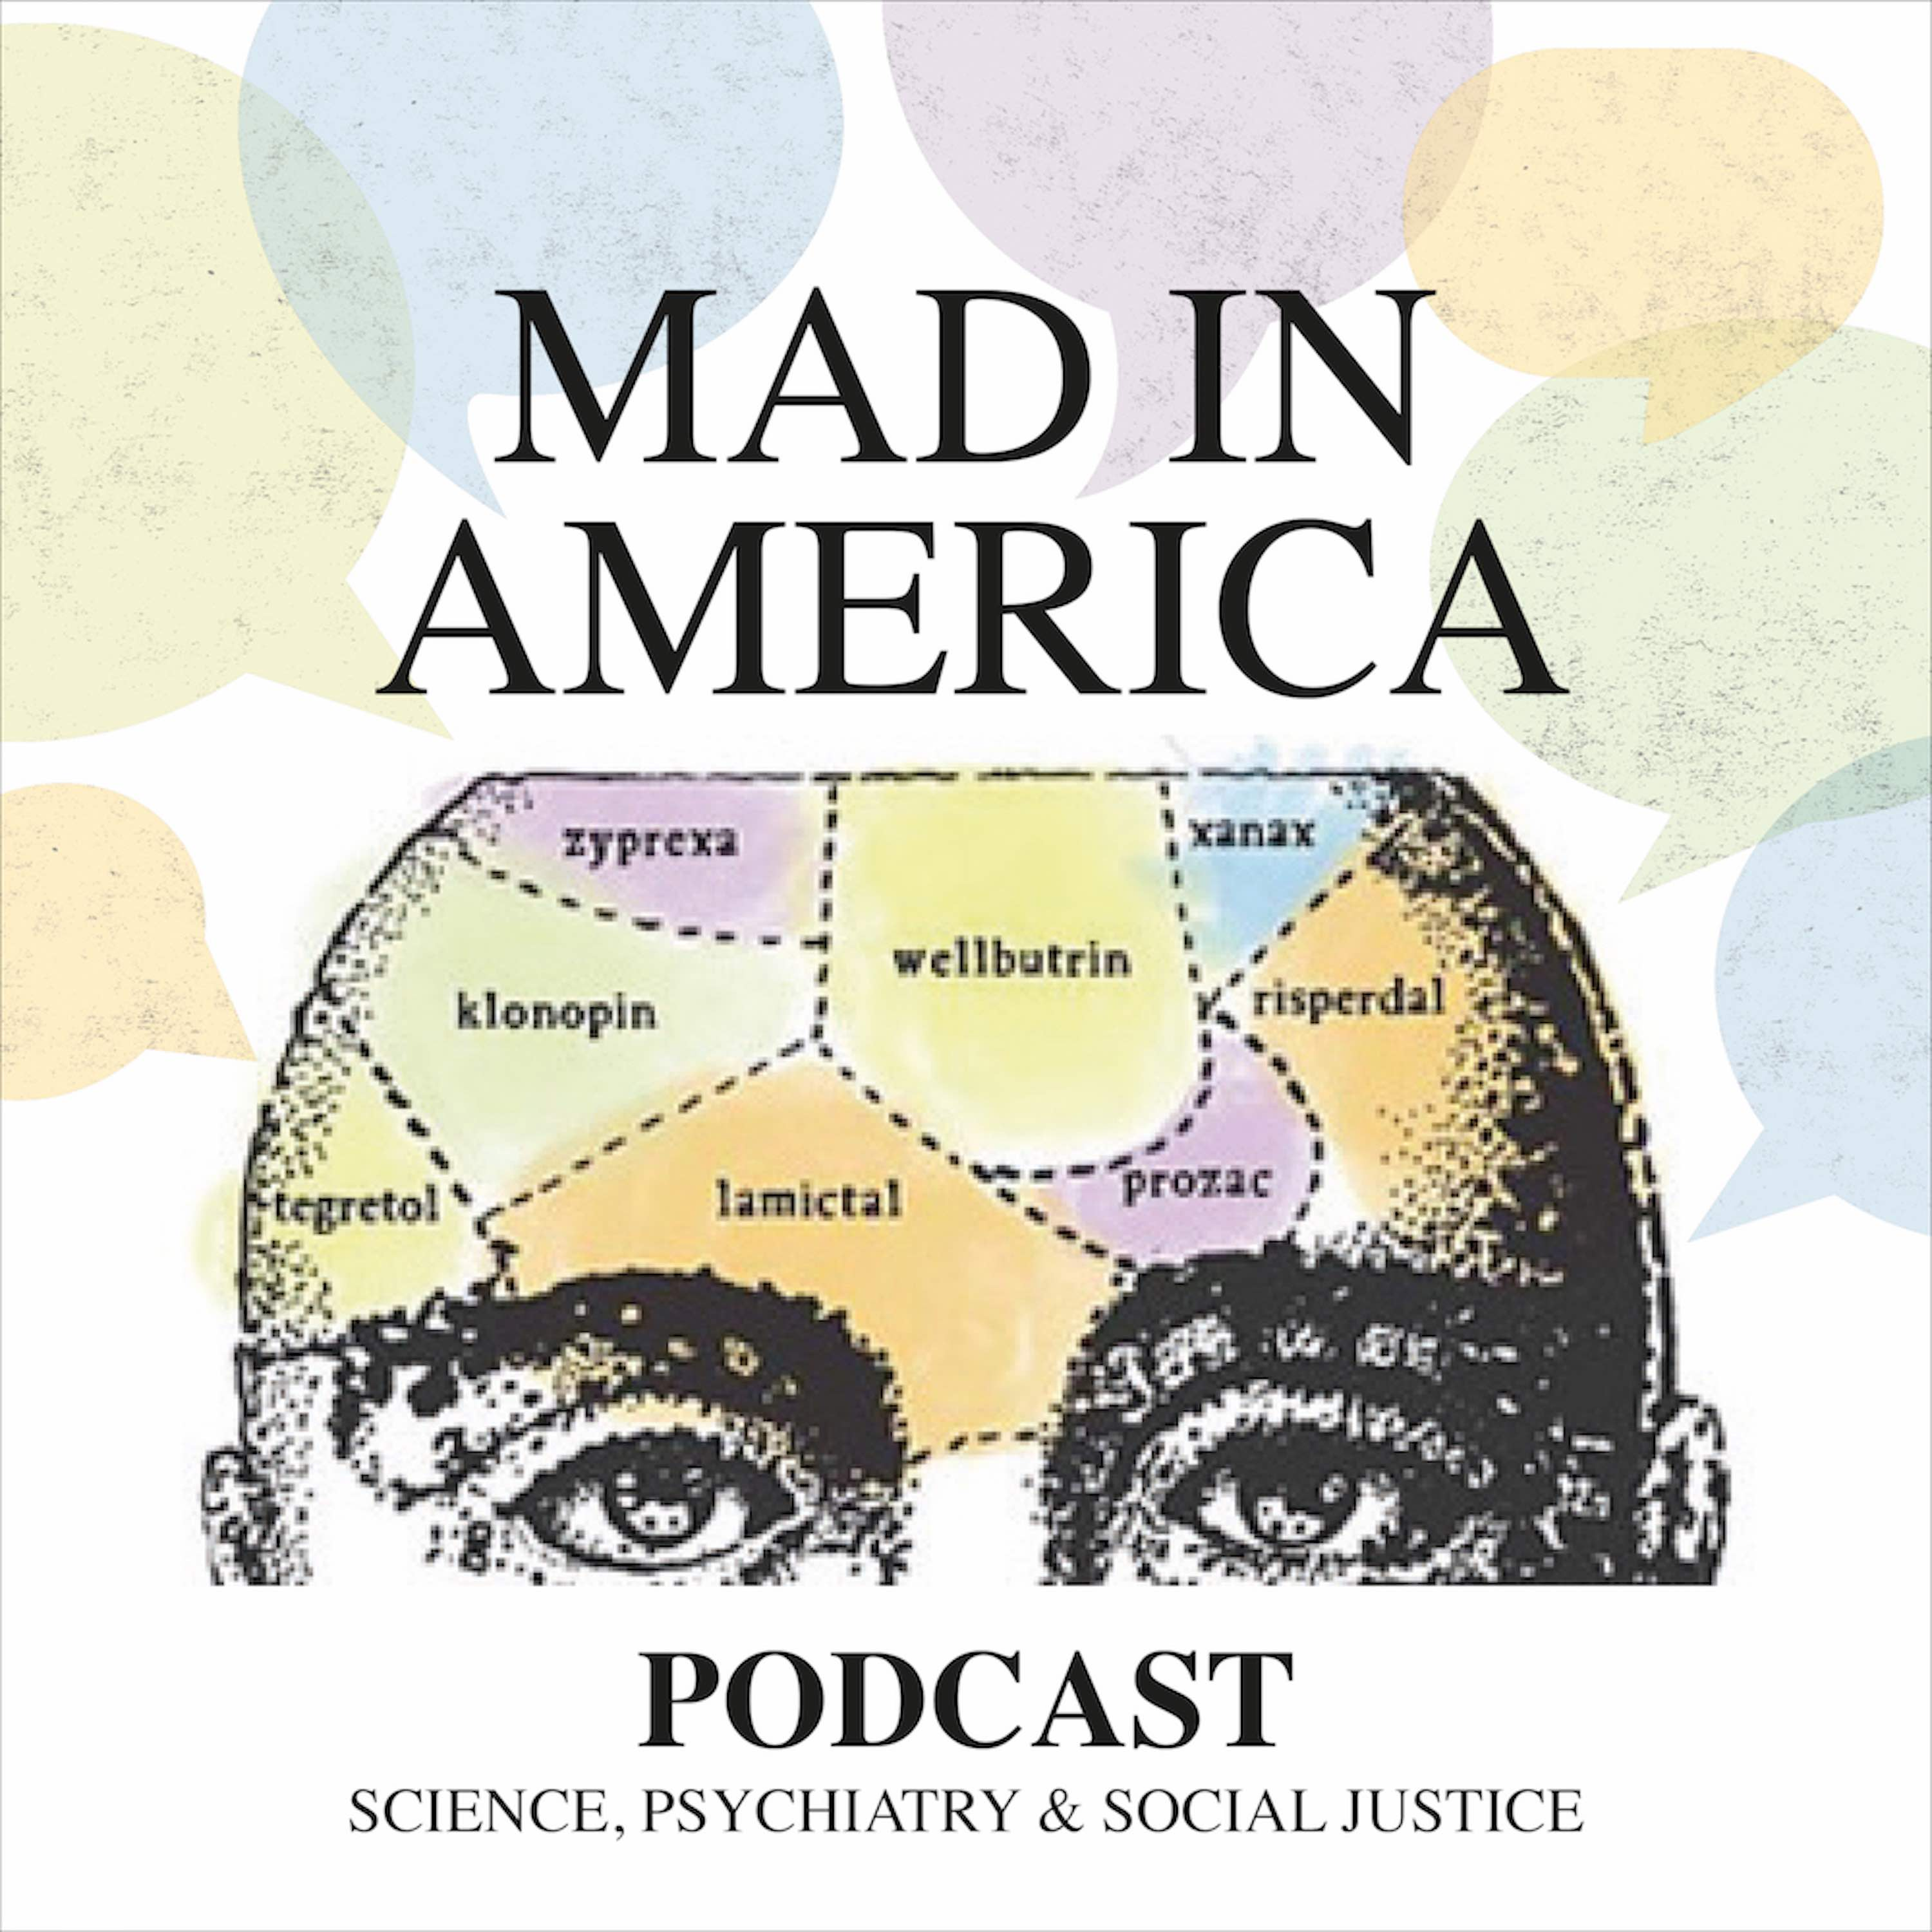 Mad in America: Rethinking Mental Health - John Read - UK Royal College of Psychiatry Refuses to Retract Misleading Statement about Antidepressant Withdrawal and Dismisses Complaint